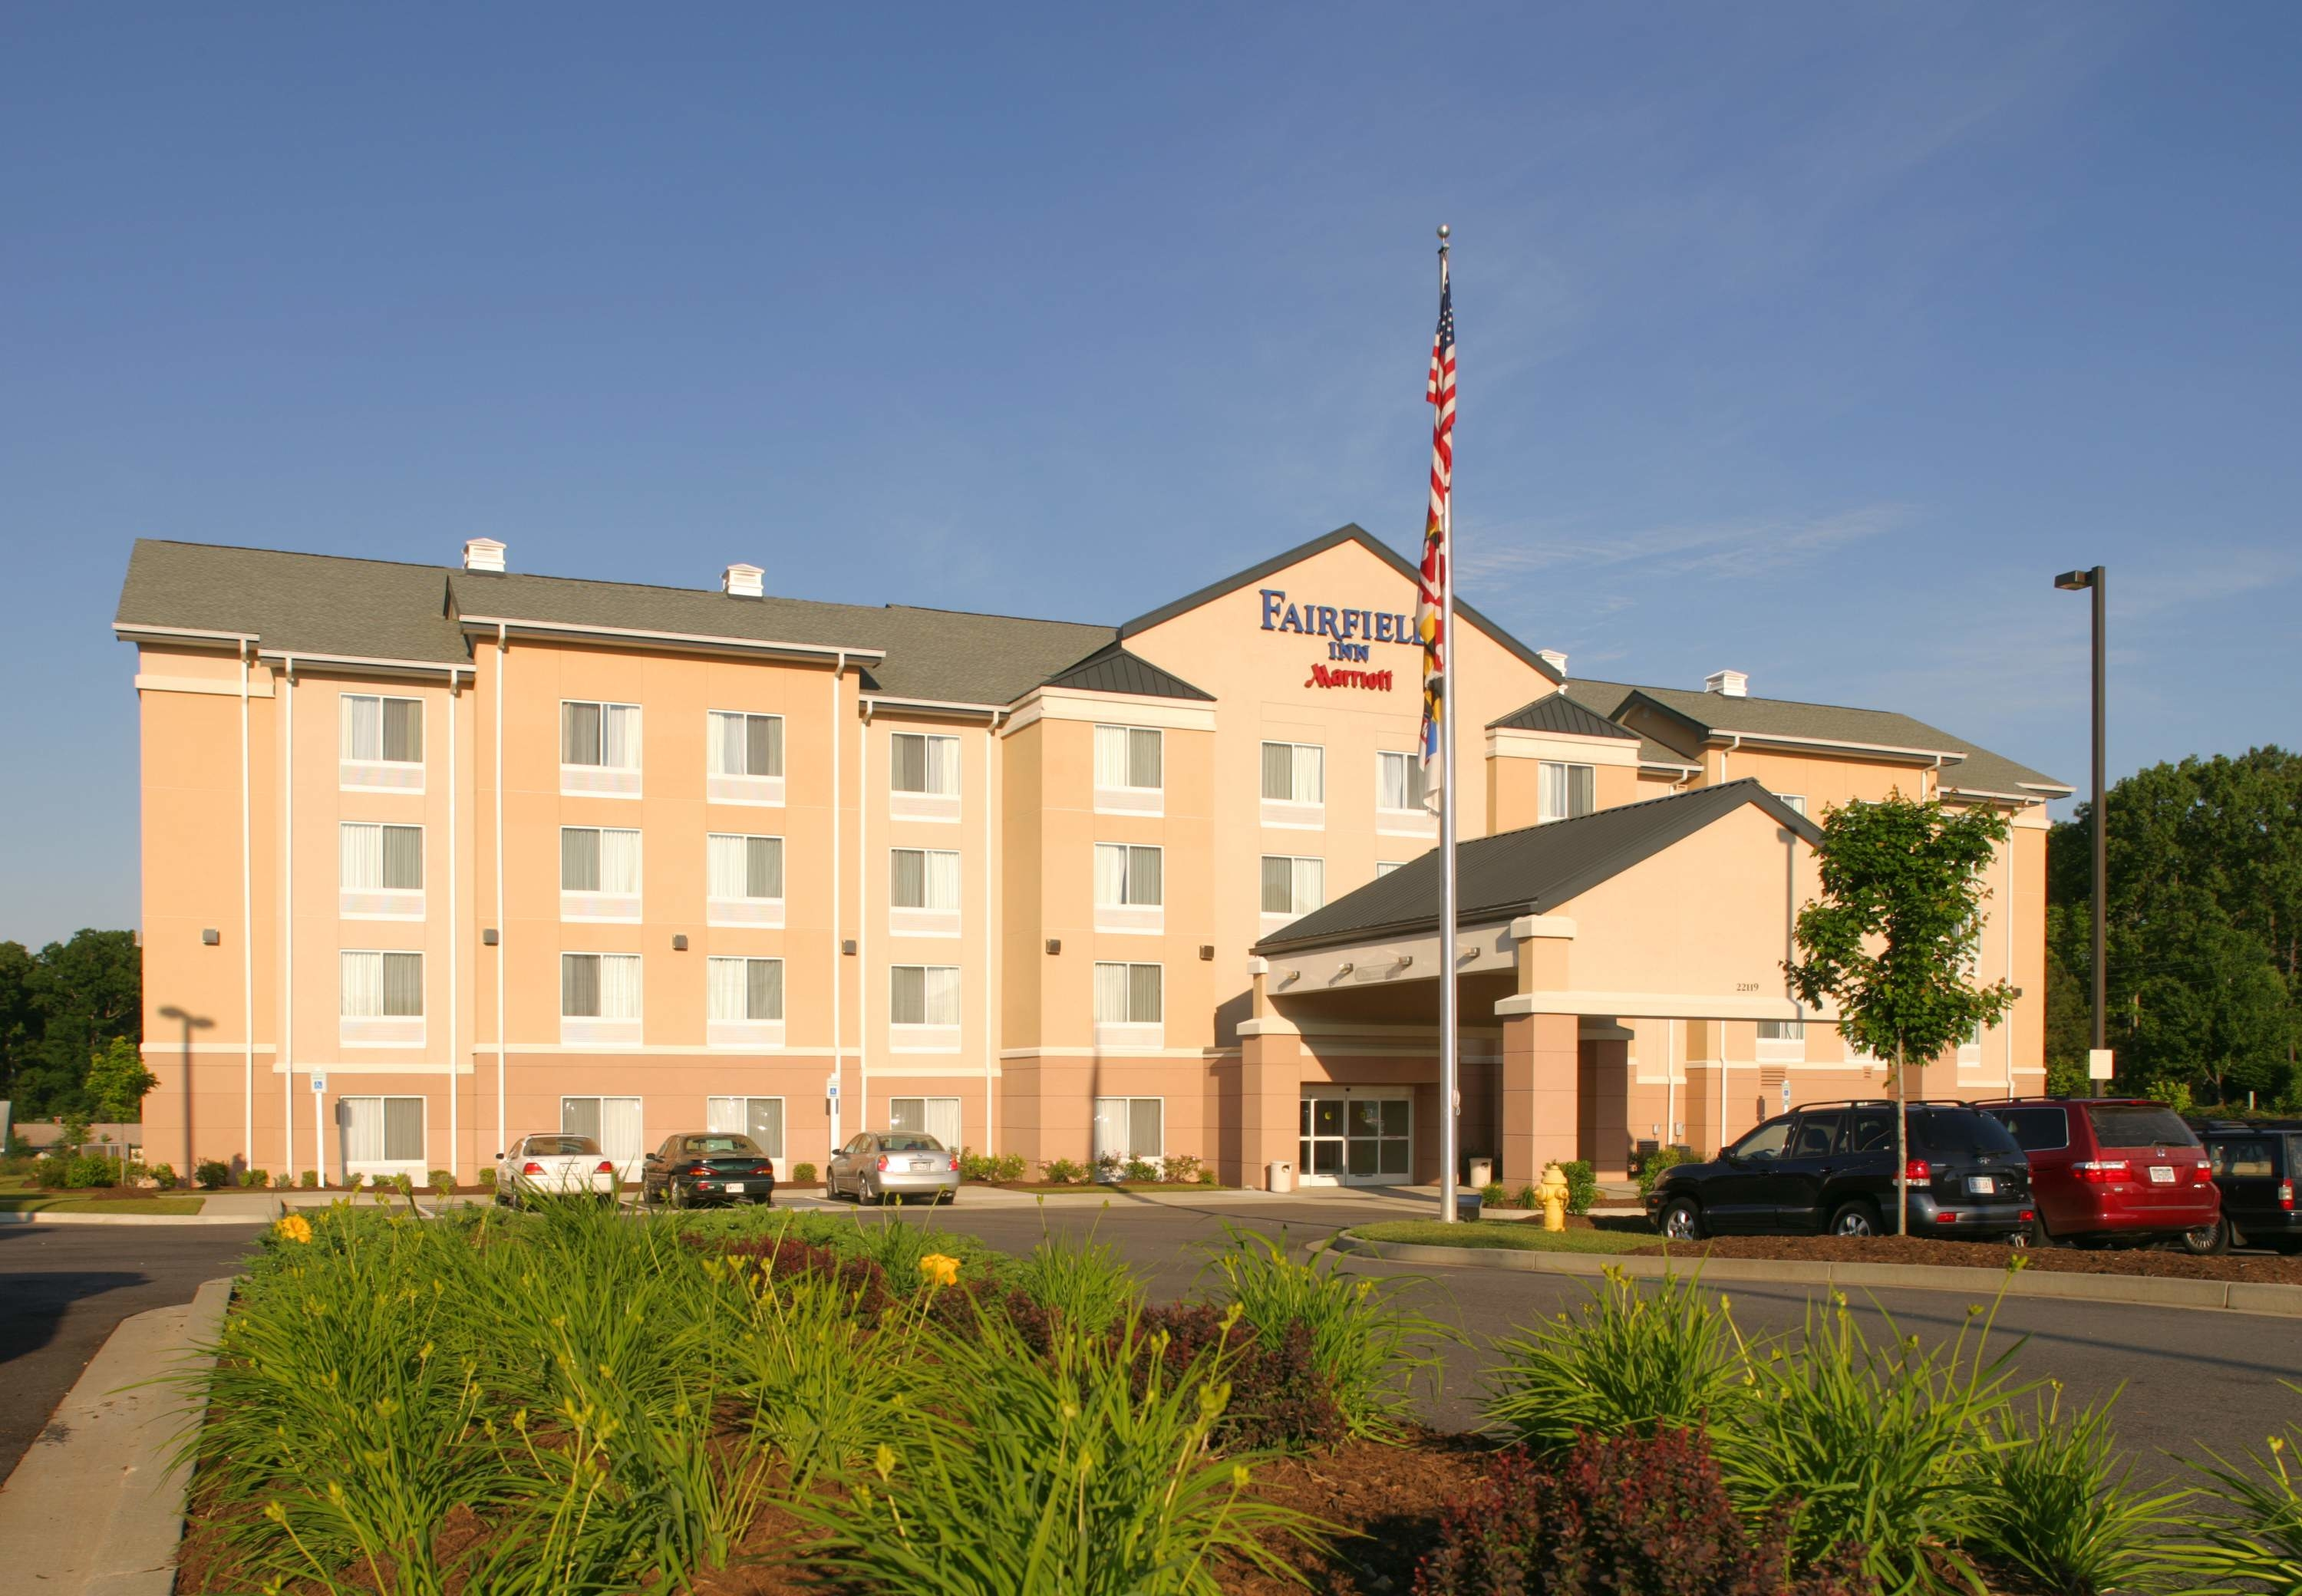 Fairfield Inn by Marriott Lexington Park Patuxent River Naval Air Station image 8